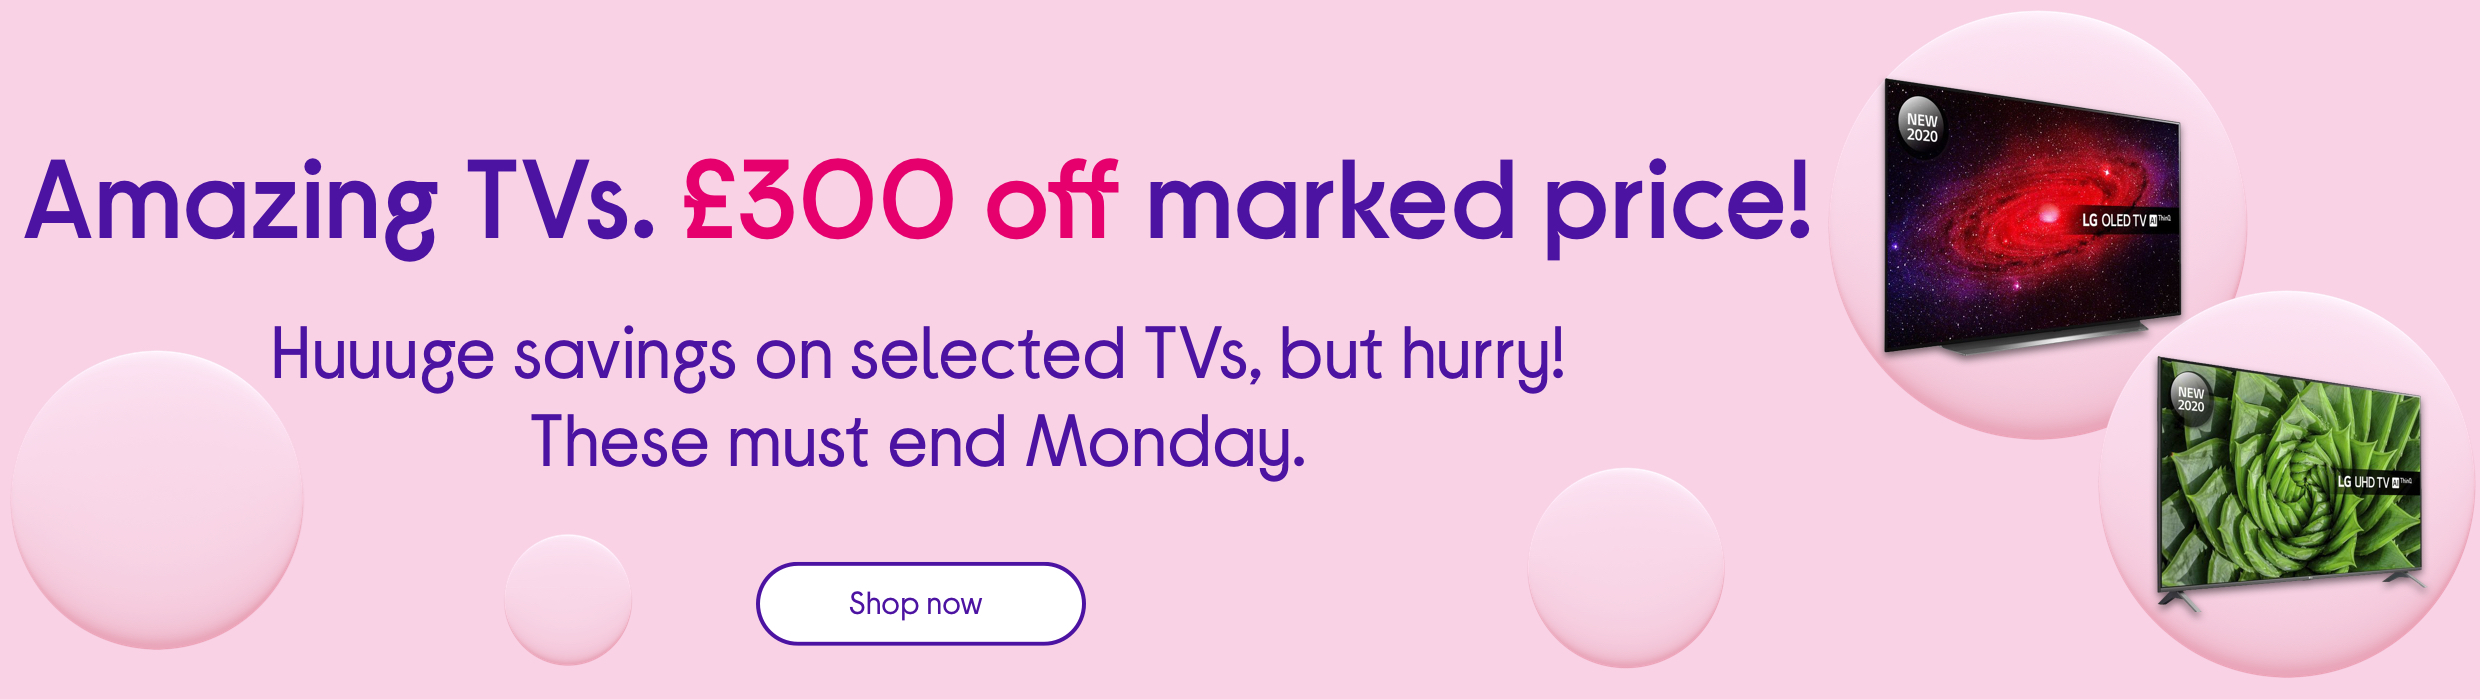 Amazing TVs. £300 off marked price!